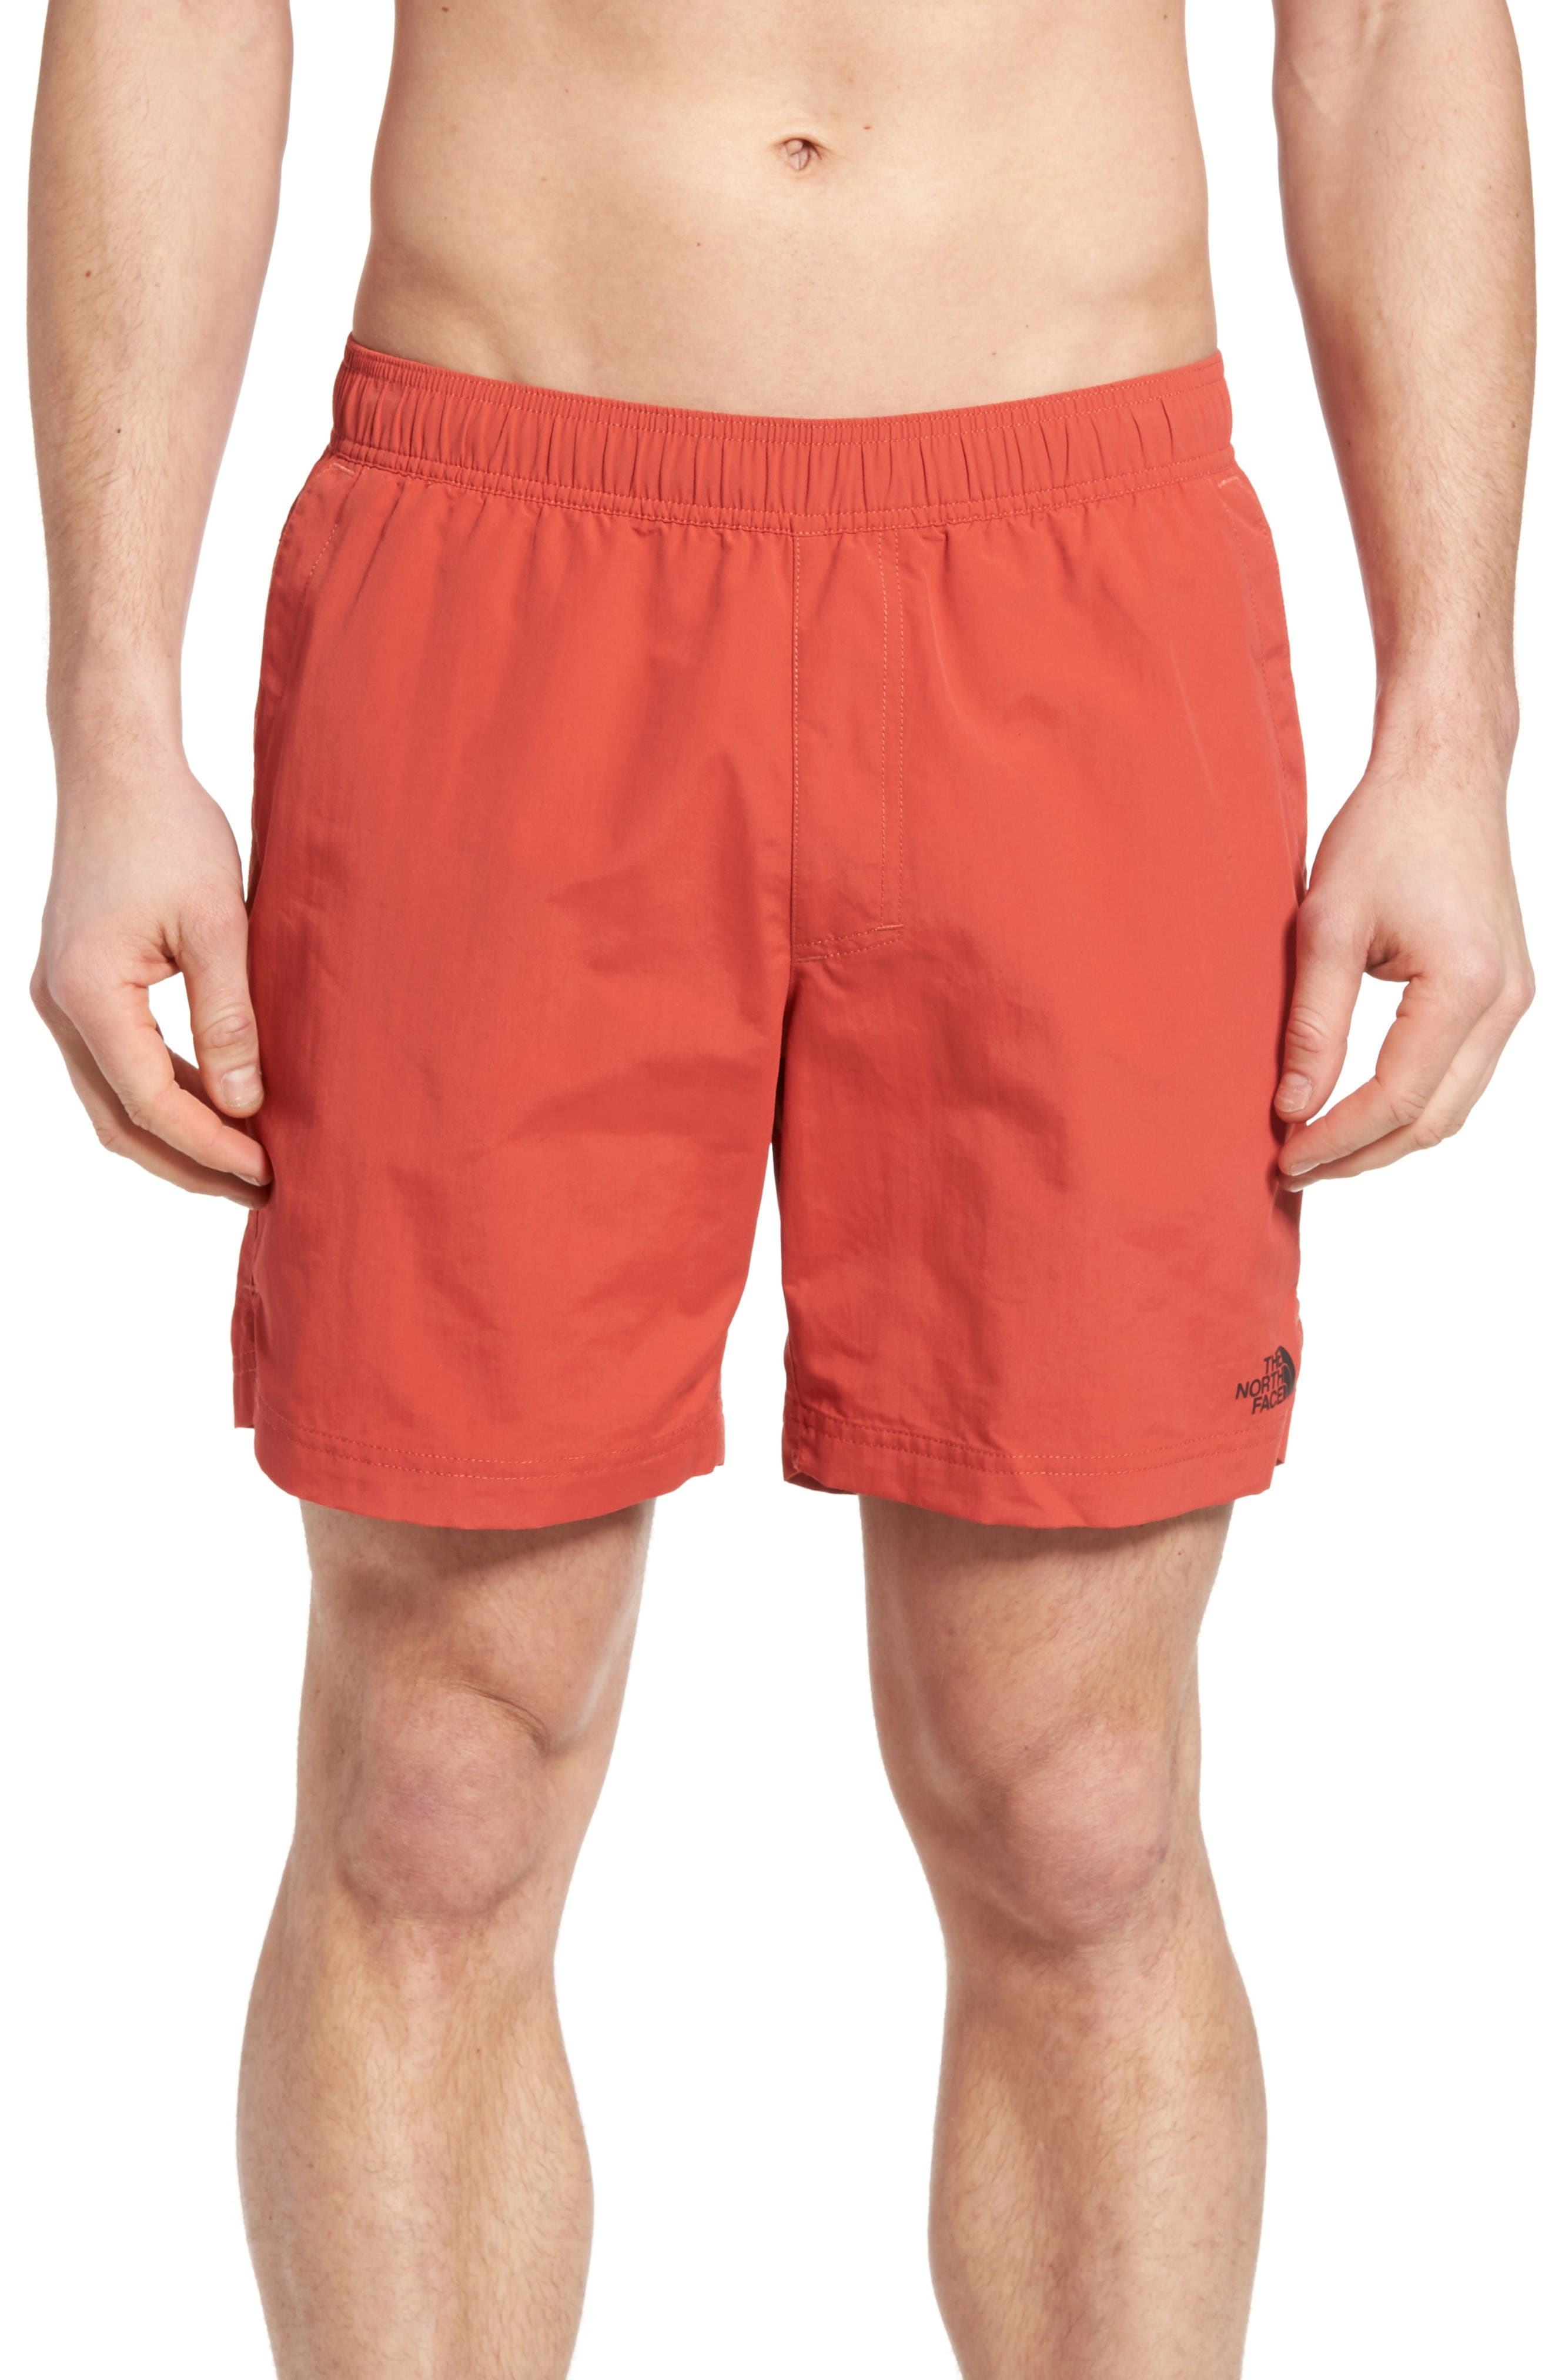 Alternate Image 1 Selected - The North Face Swim Trunks